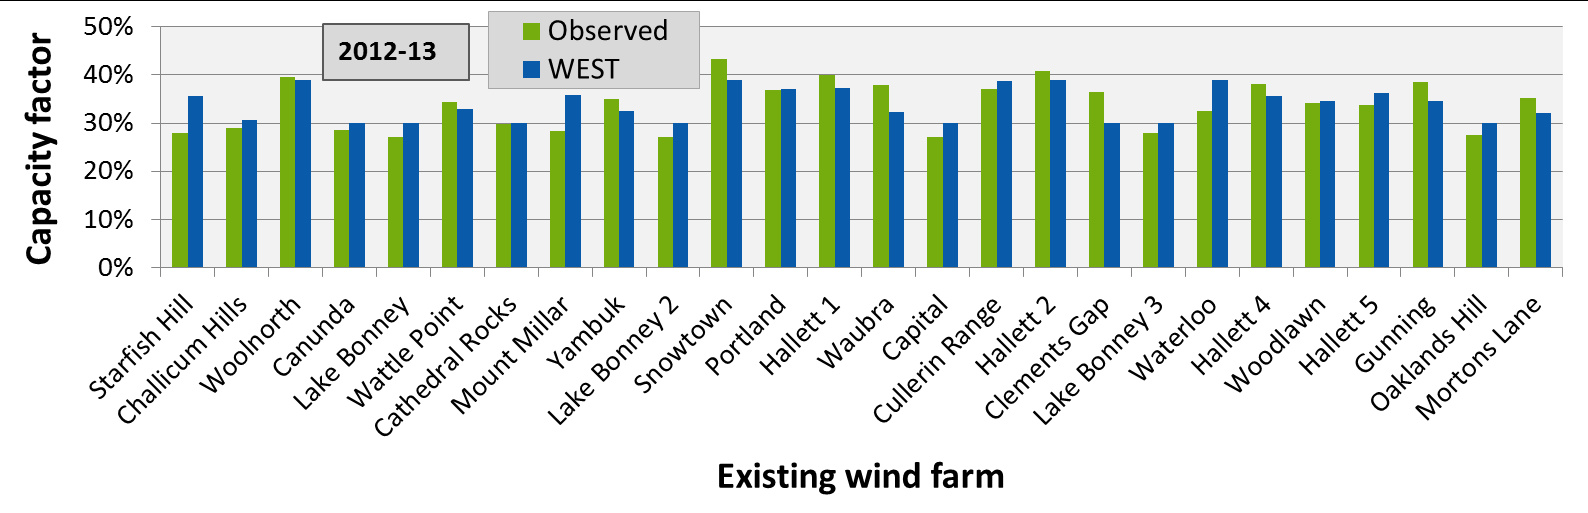 B.4.3 Benchmarking the WEST model A wind farm s capacity factor is highly dependent on the wind resource at its location and is one of the most important factors determining its financial viability